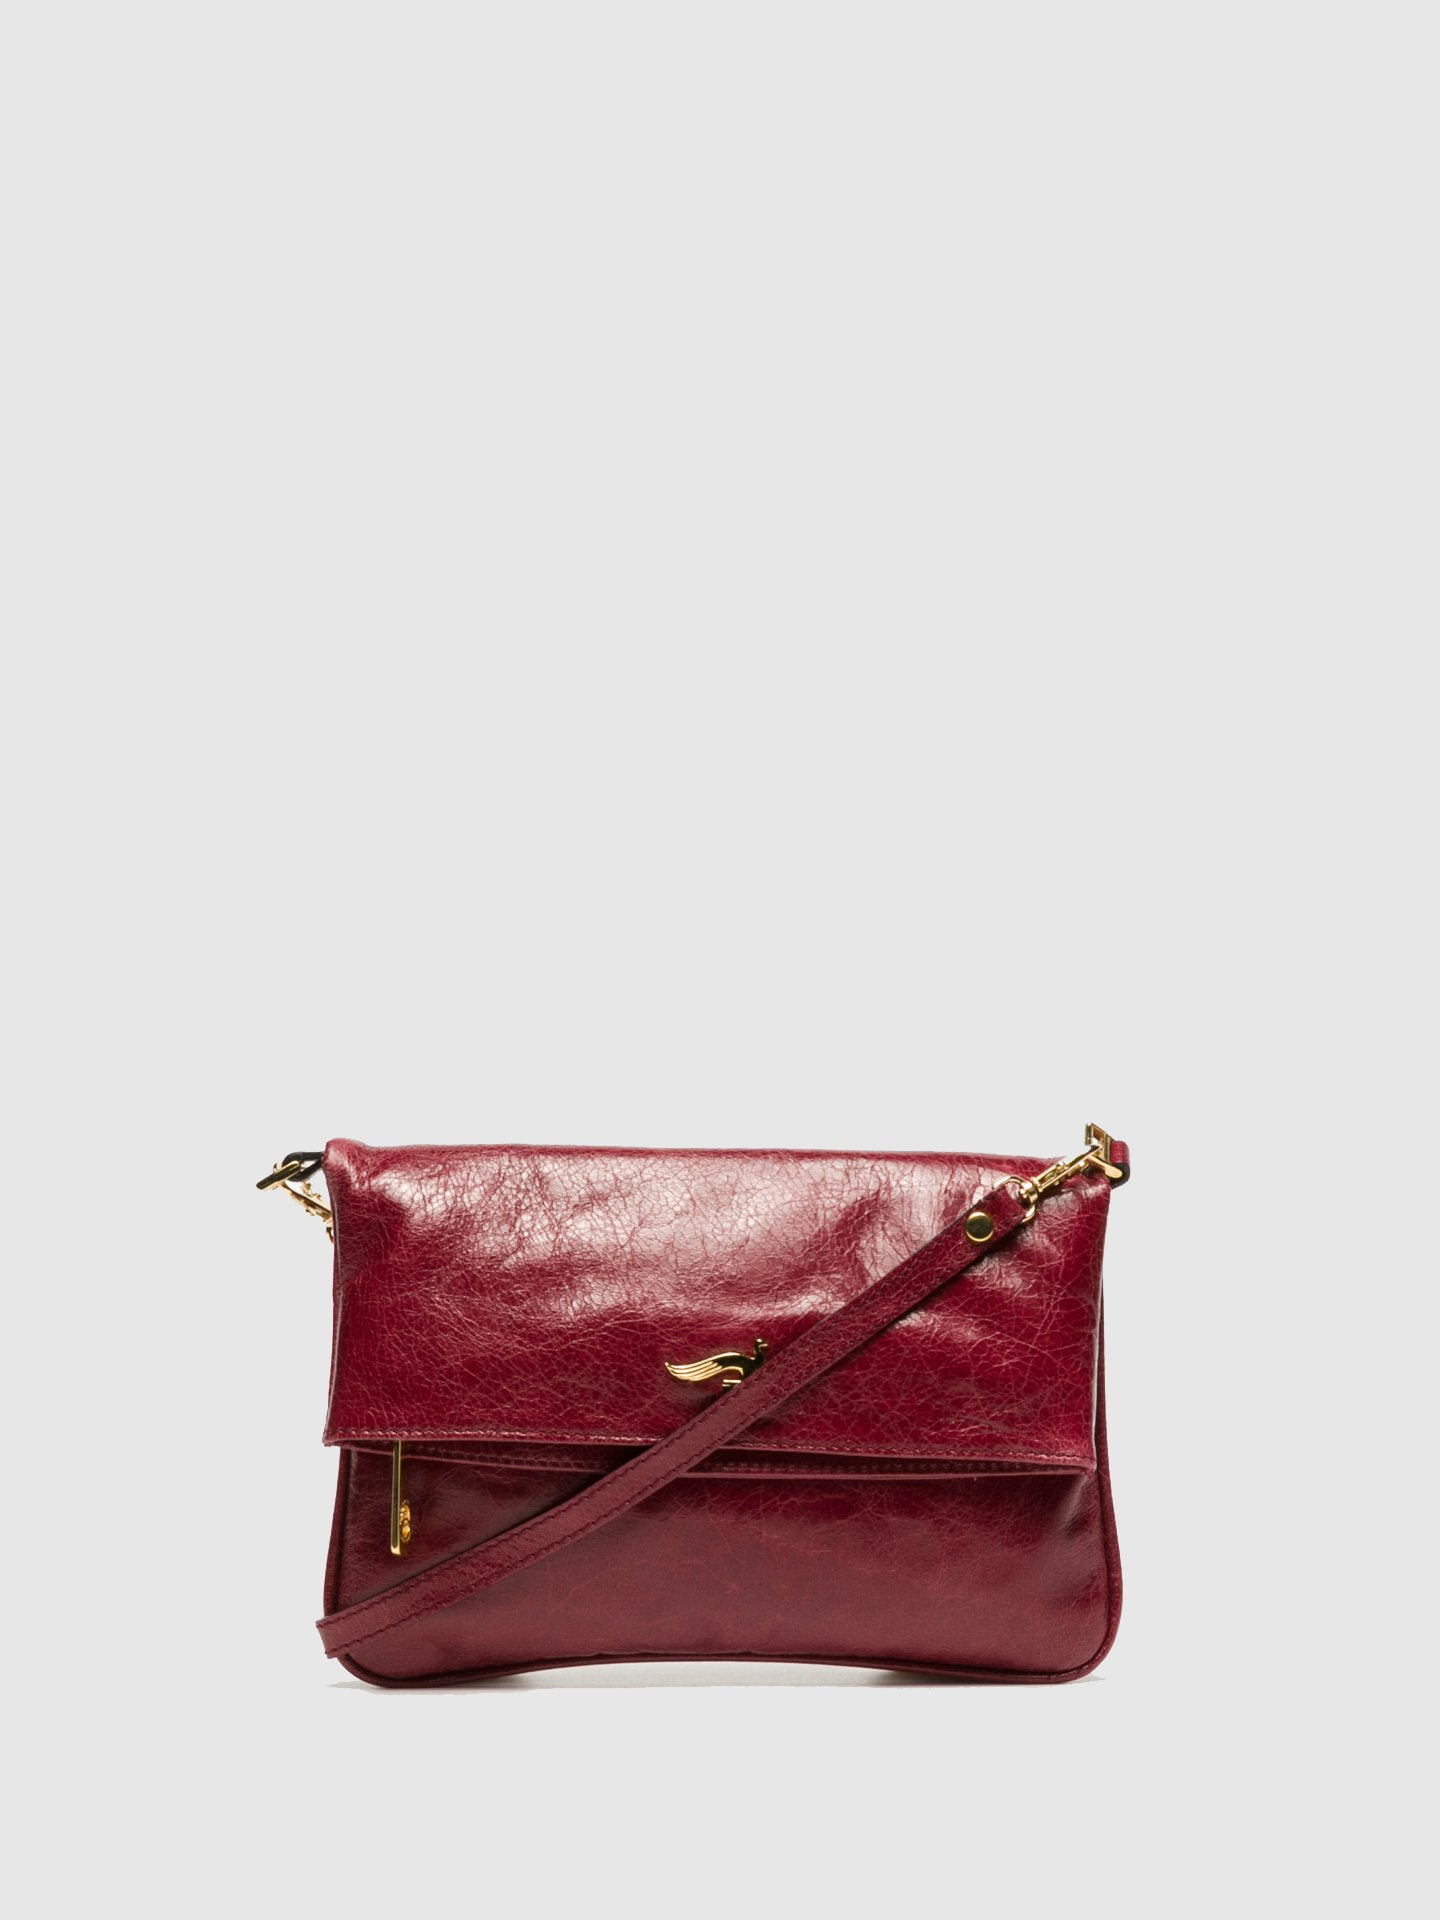 Marta Ponti DarkRed Clutch